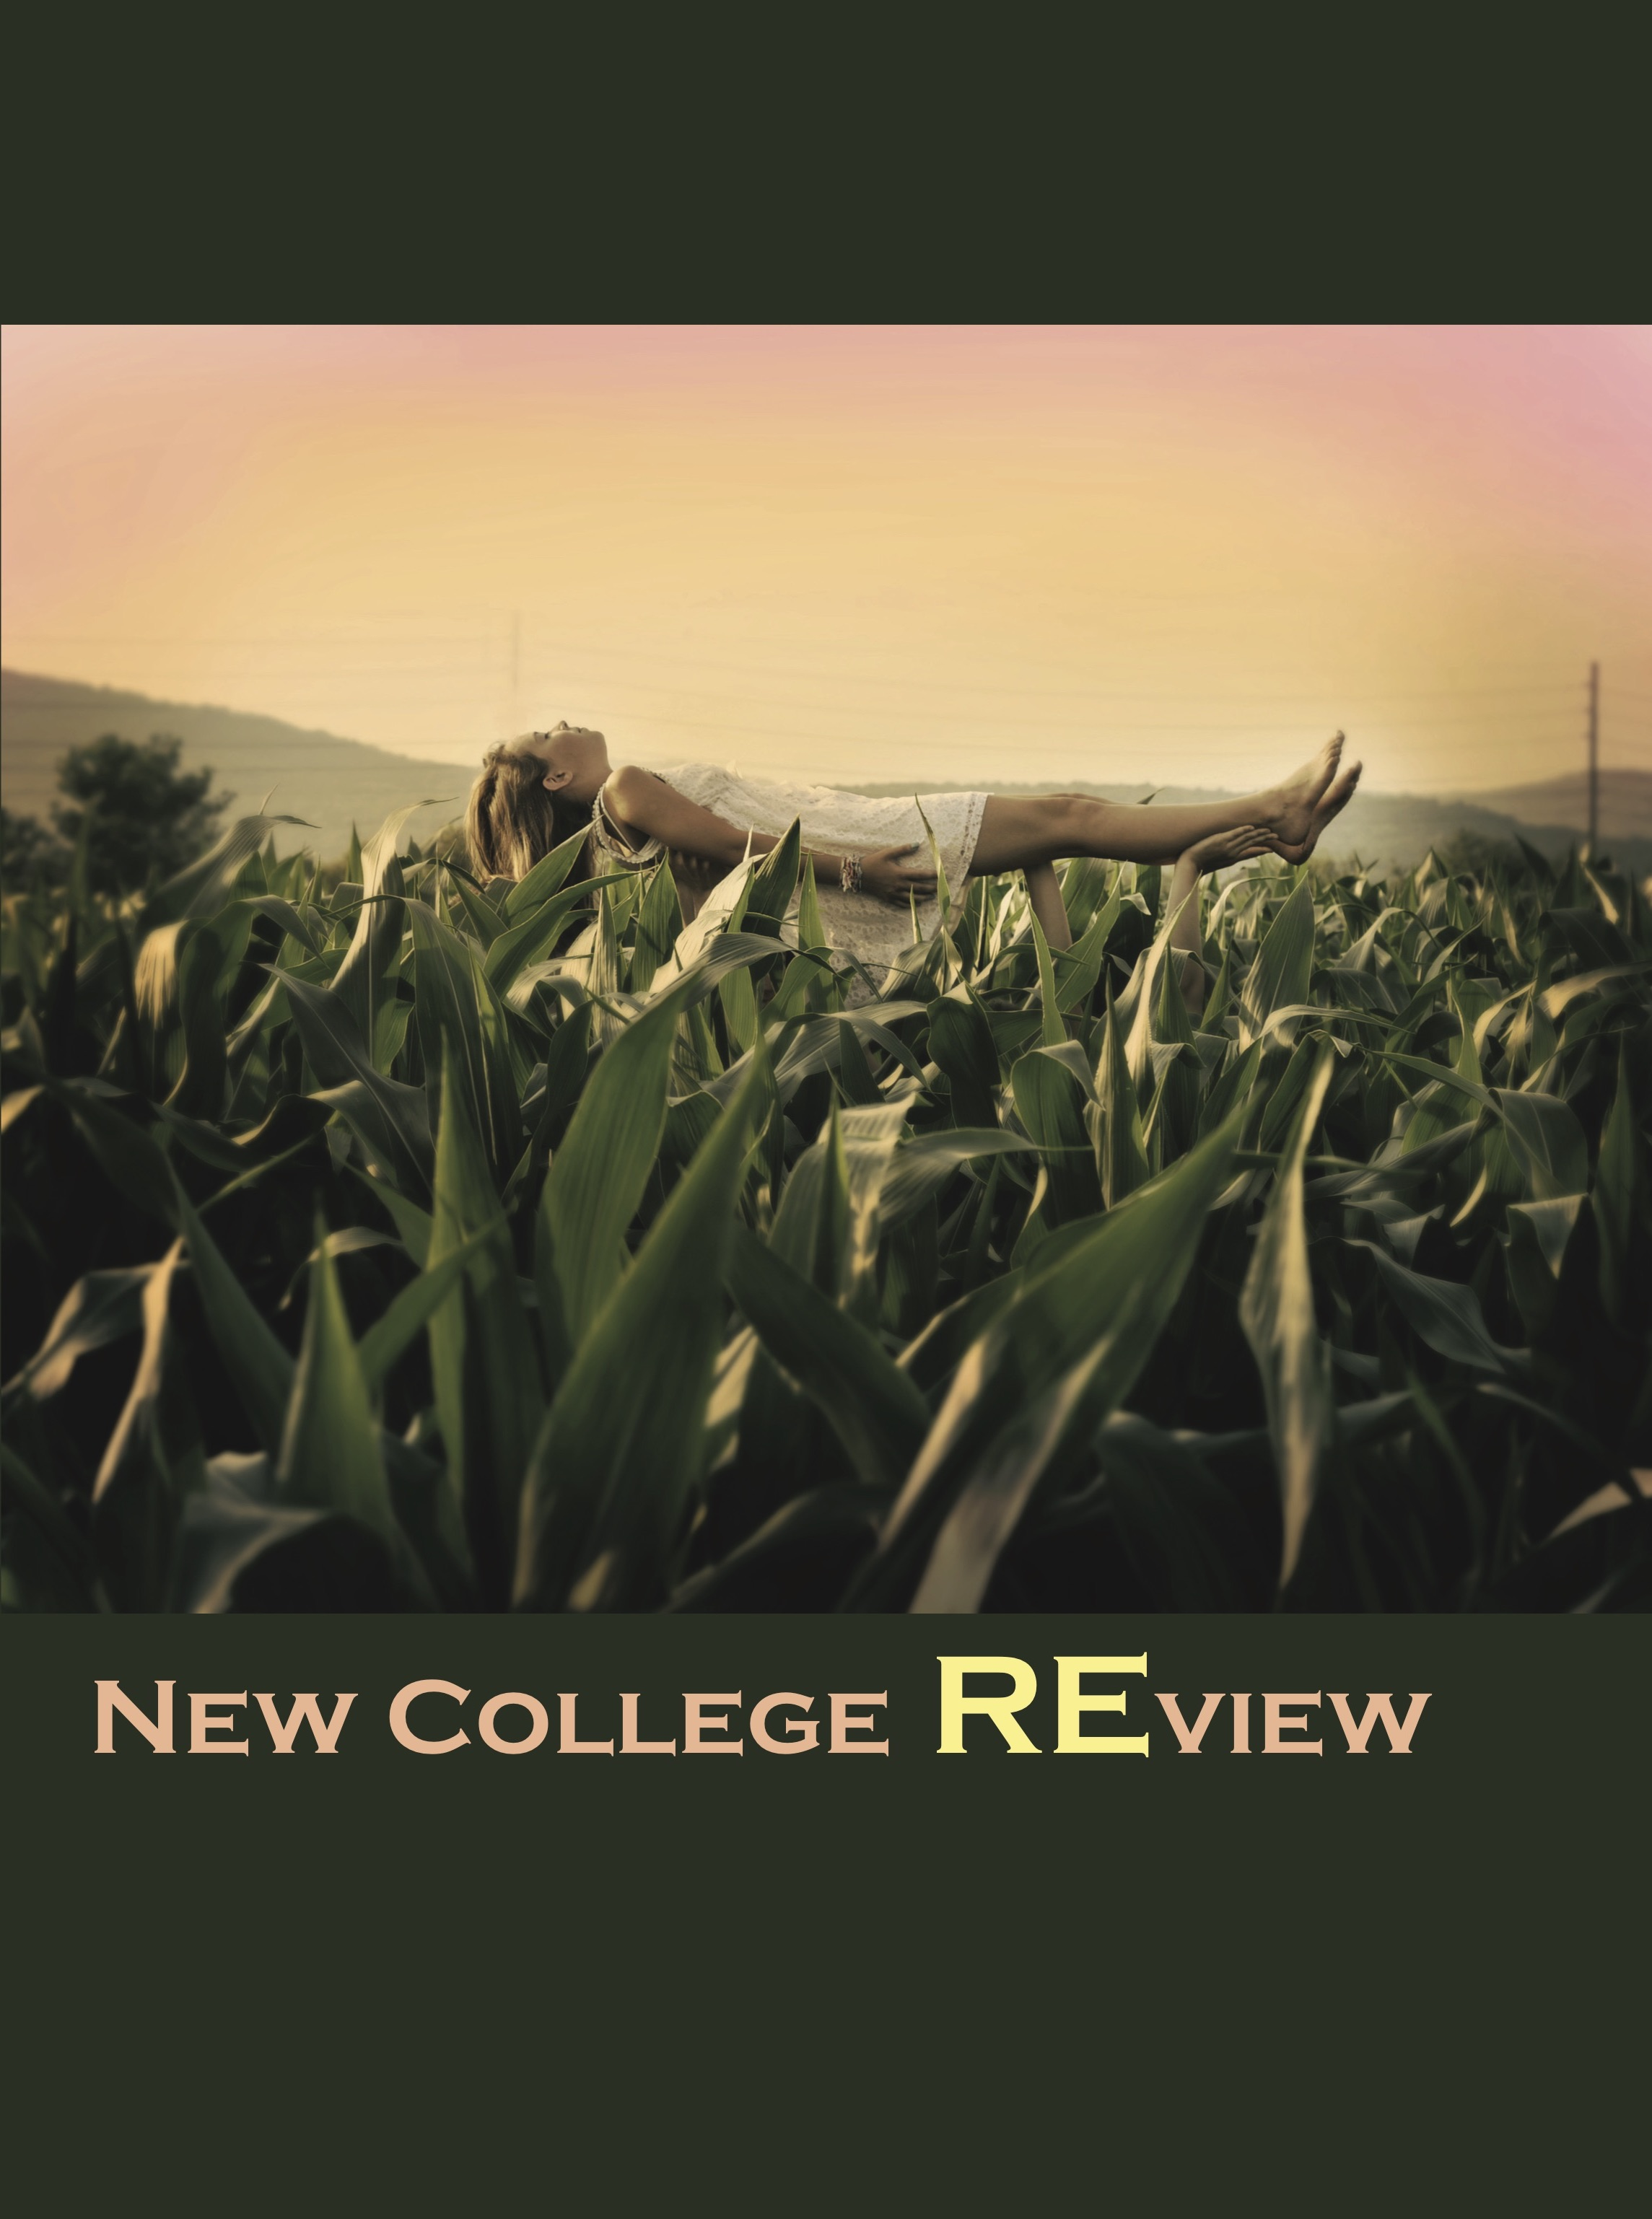 Cover of The New College Review, 2012 issue featuring a girl being carried through a cornfield